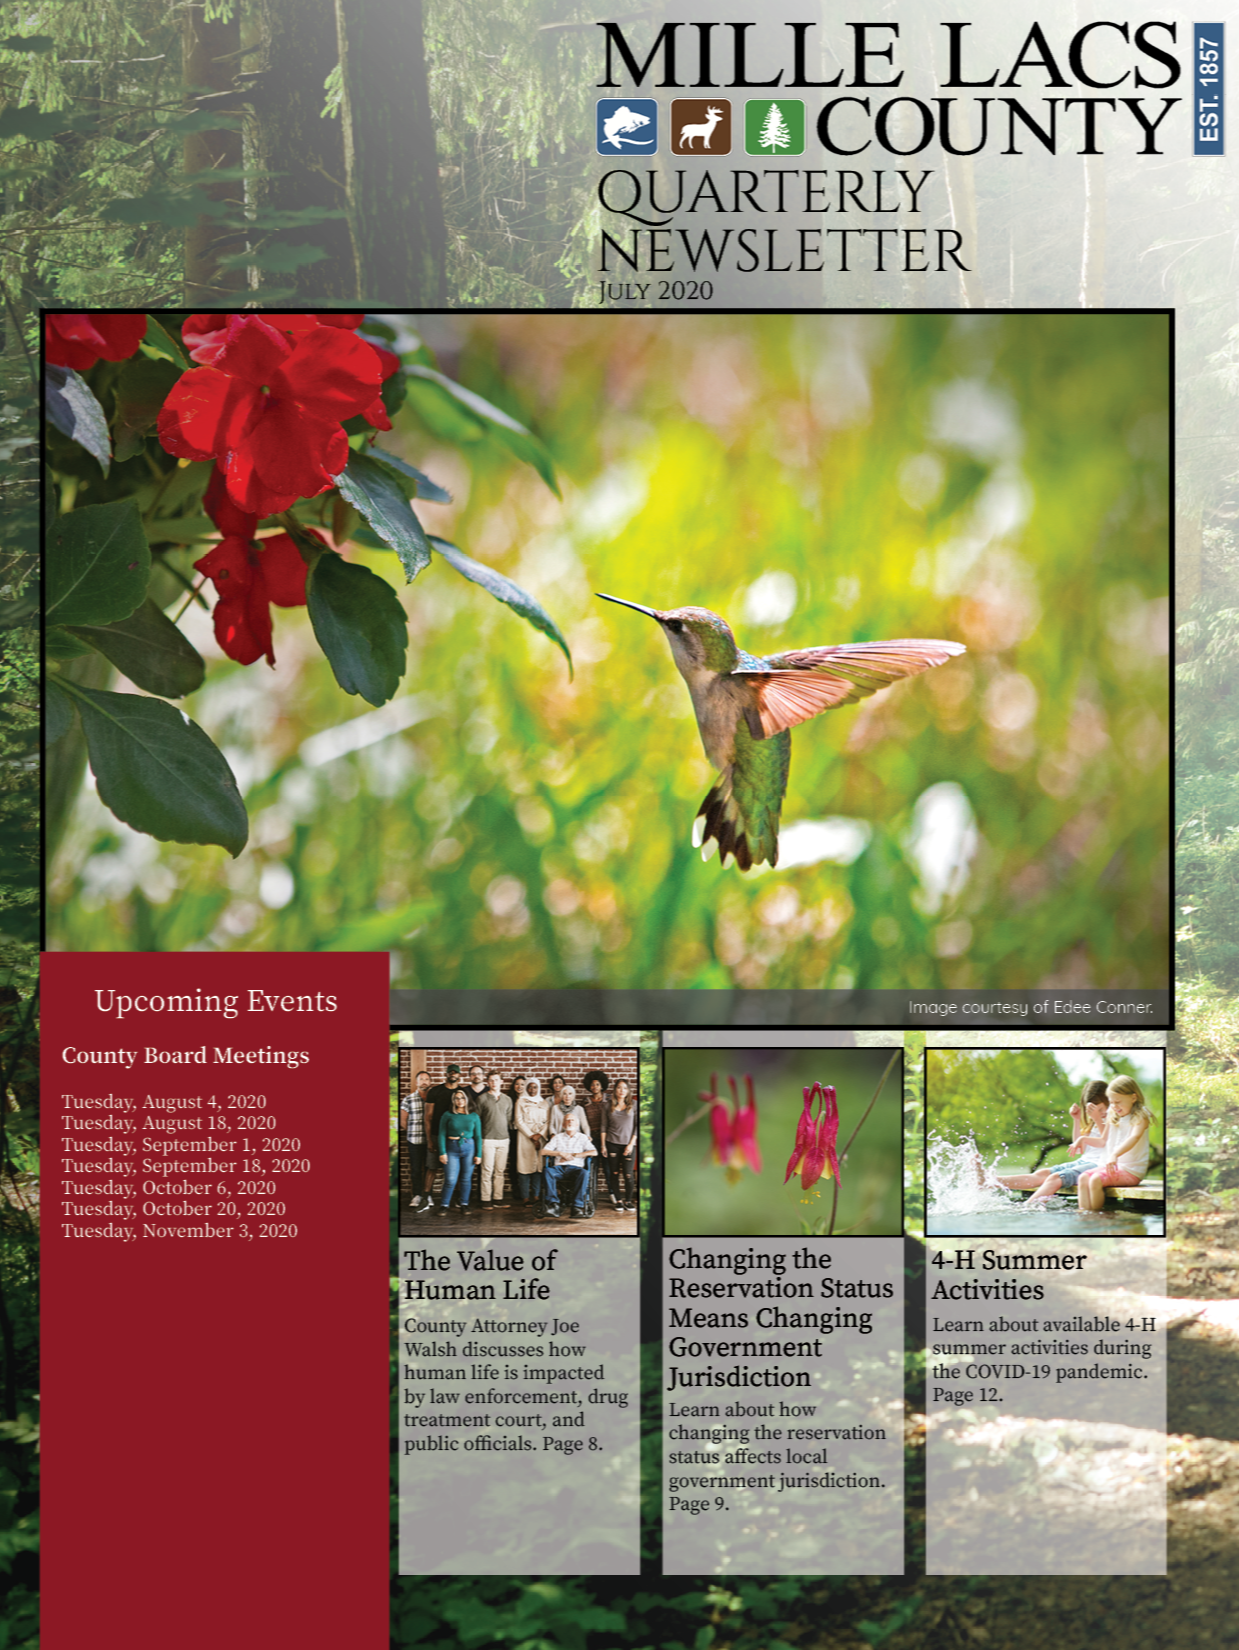 Cover of the July 2020 Mille Lacs County Quarterly Newsletter